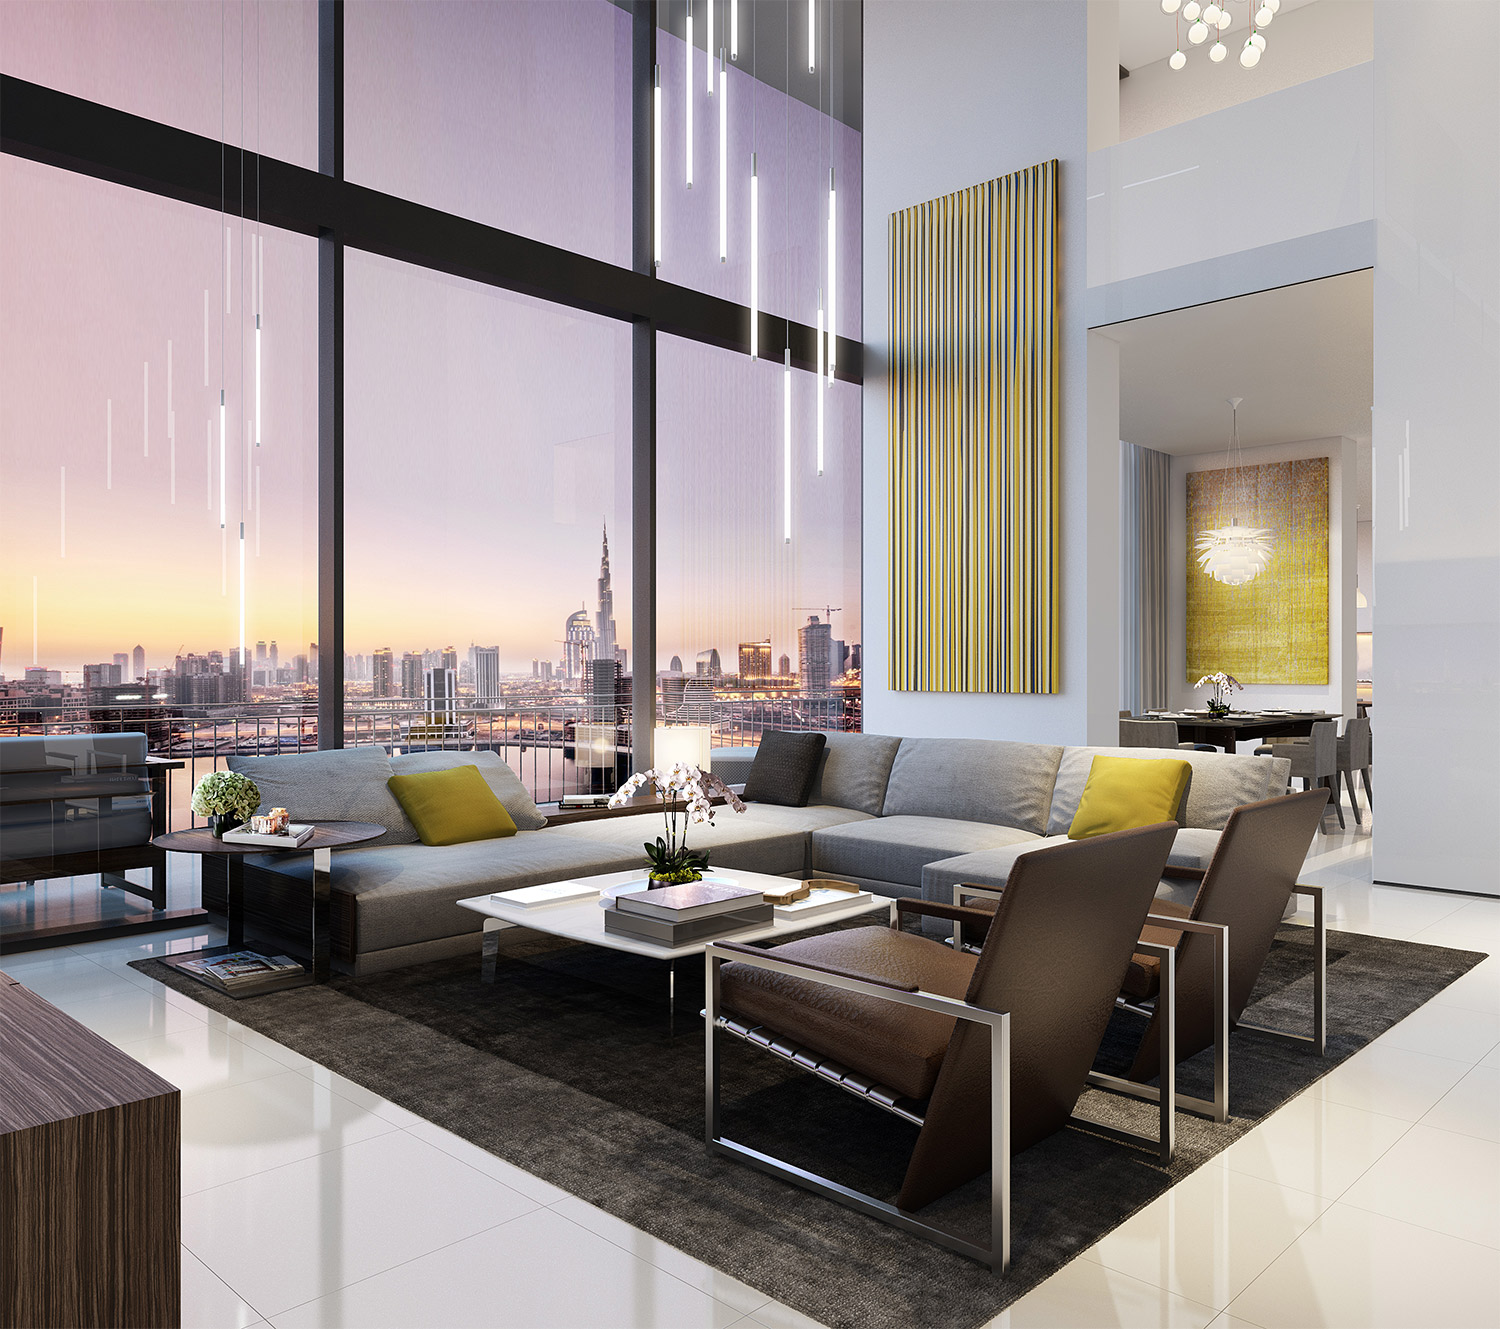 PENTHOUSE-18A-LIVING-ROOM-GREY.jpg